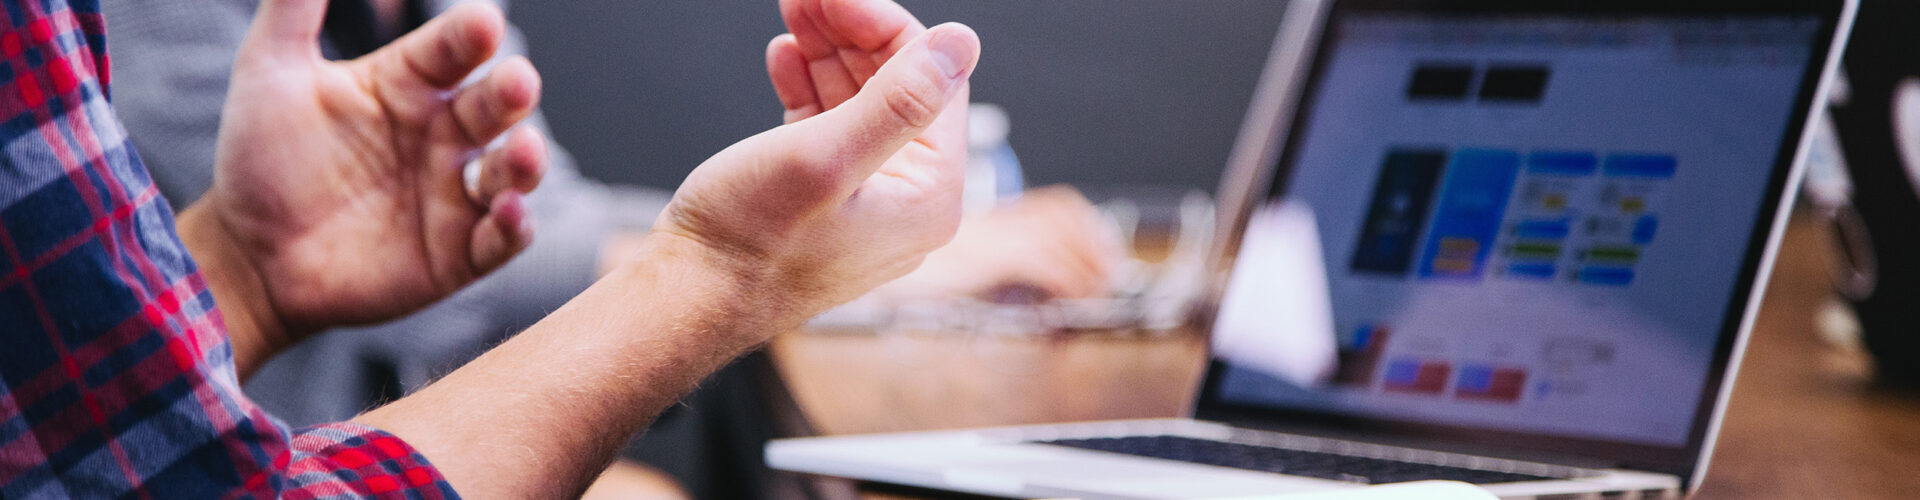 Close-up of person at a board table, gesturing with their hands